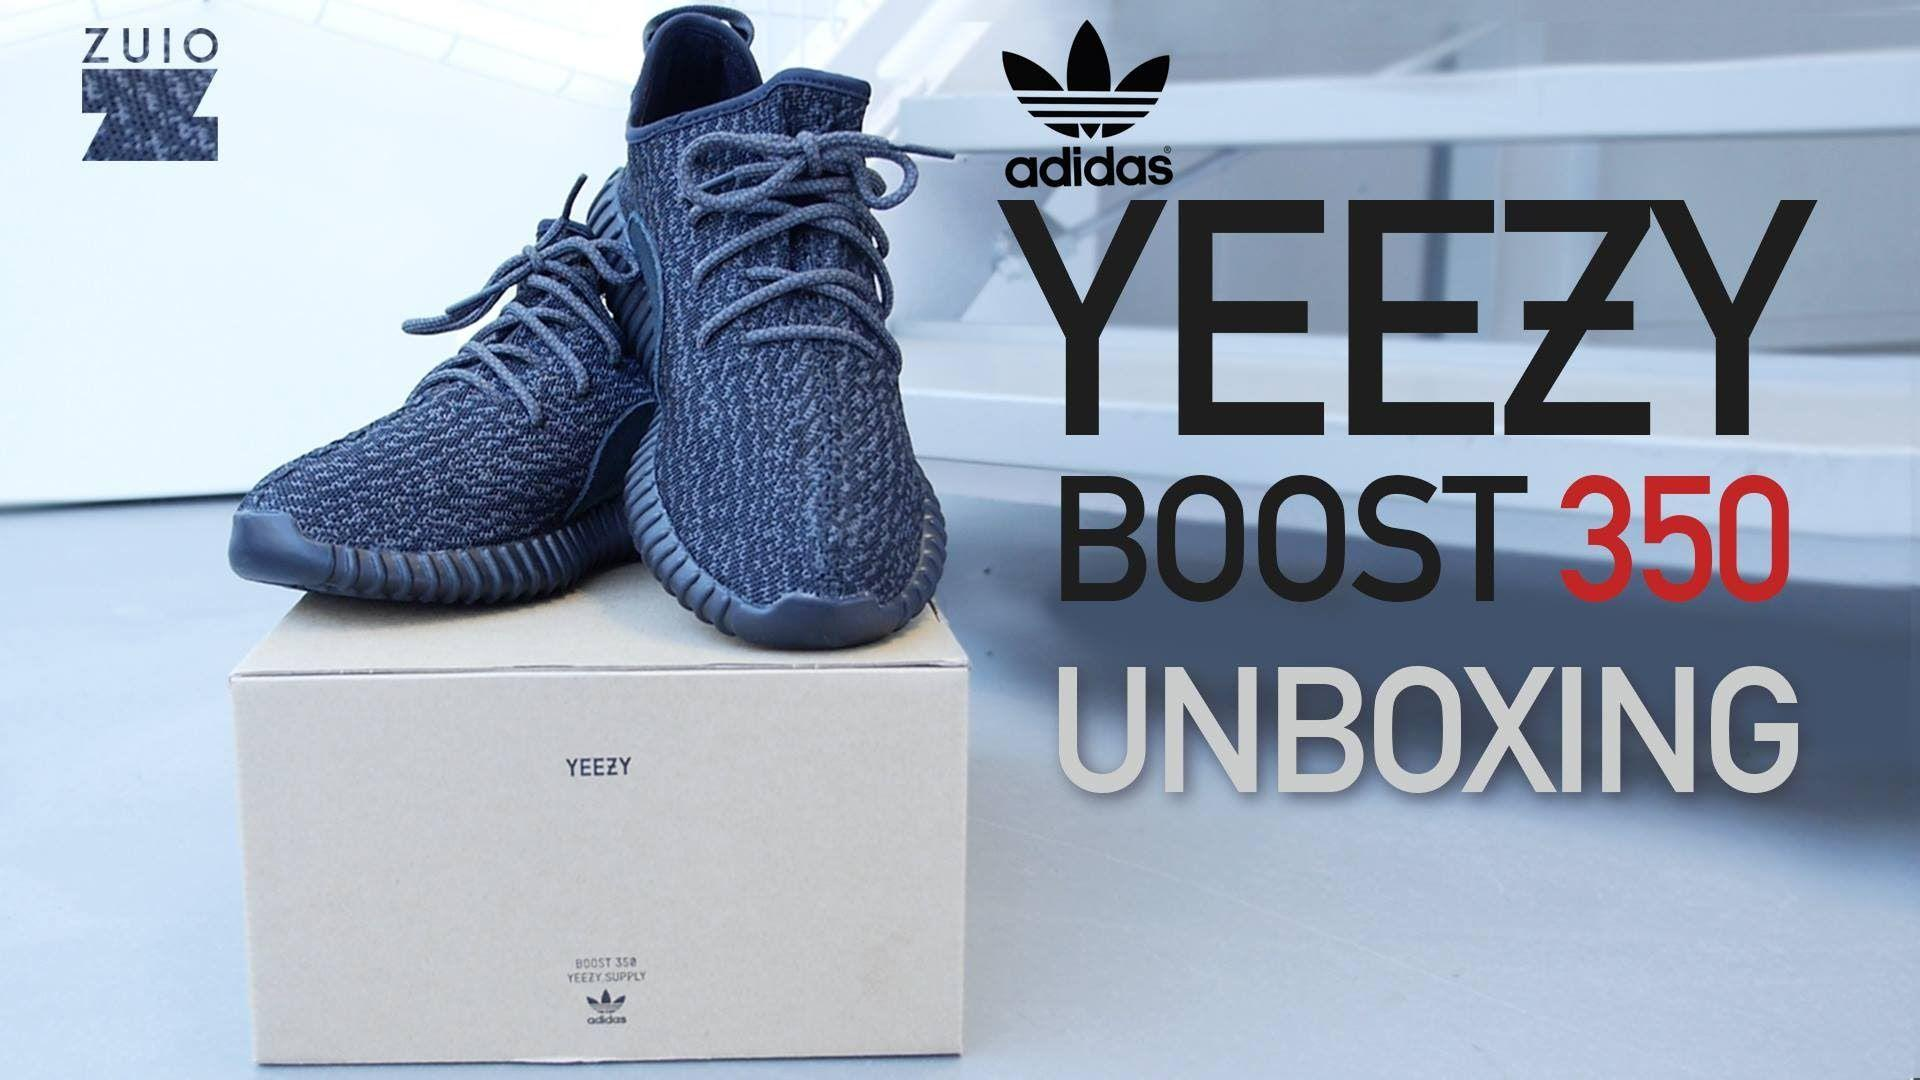 timeless design 2fe08 a9397 Adidas Yeezy Boost 350 Pirate Black - UNBOXING - YouTube